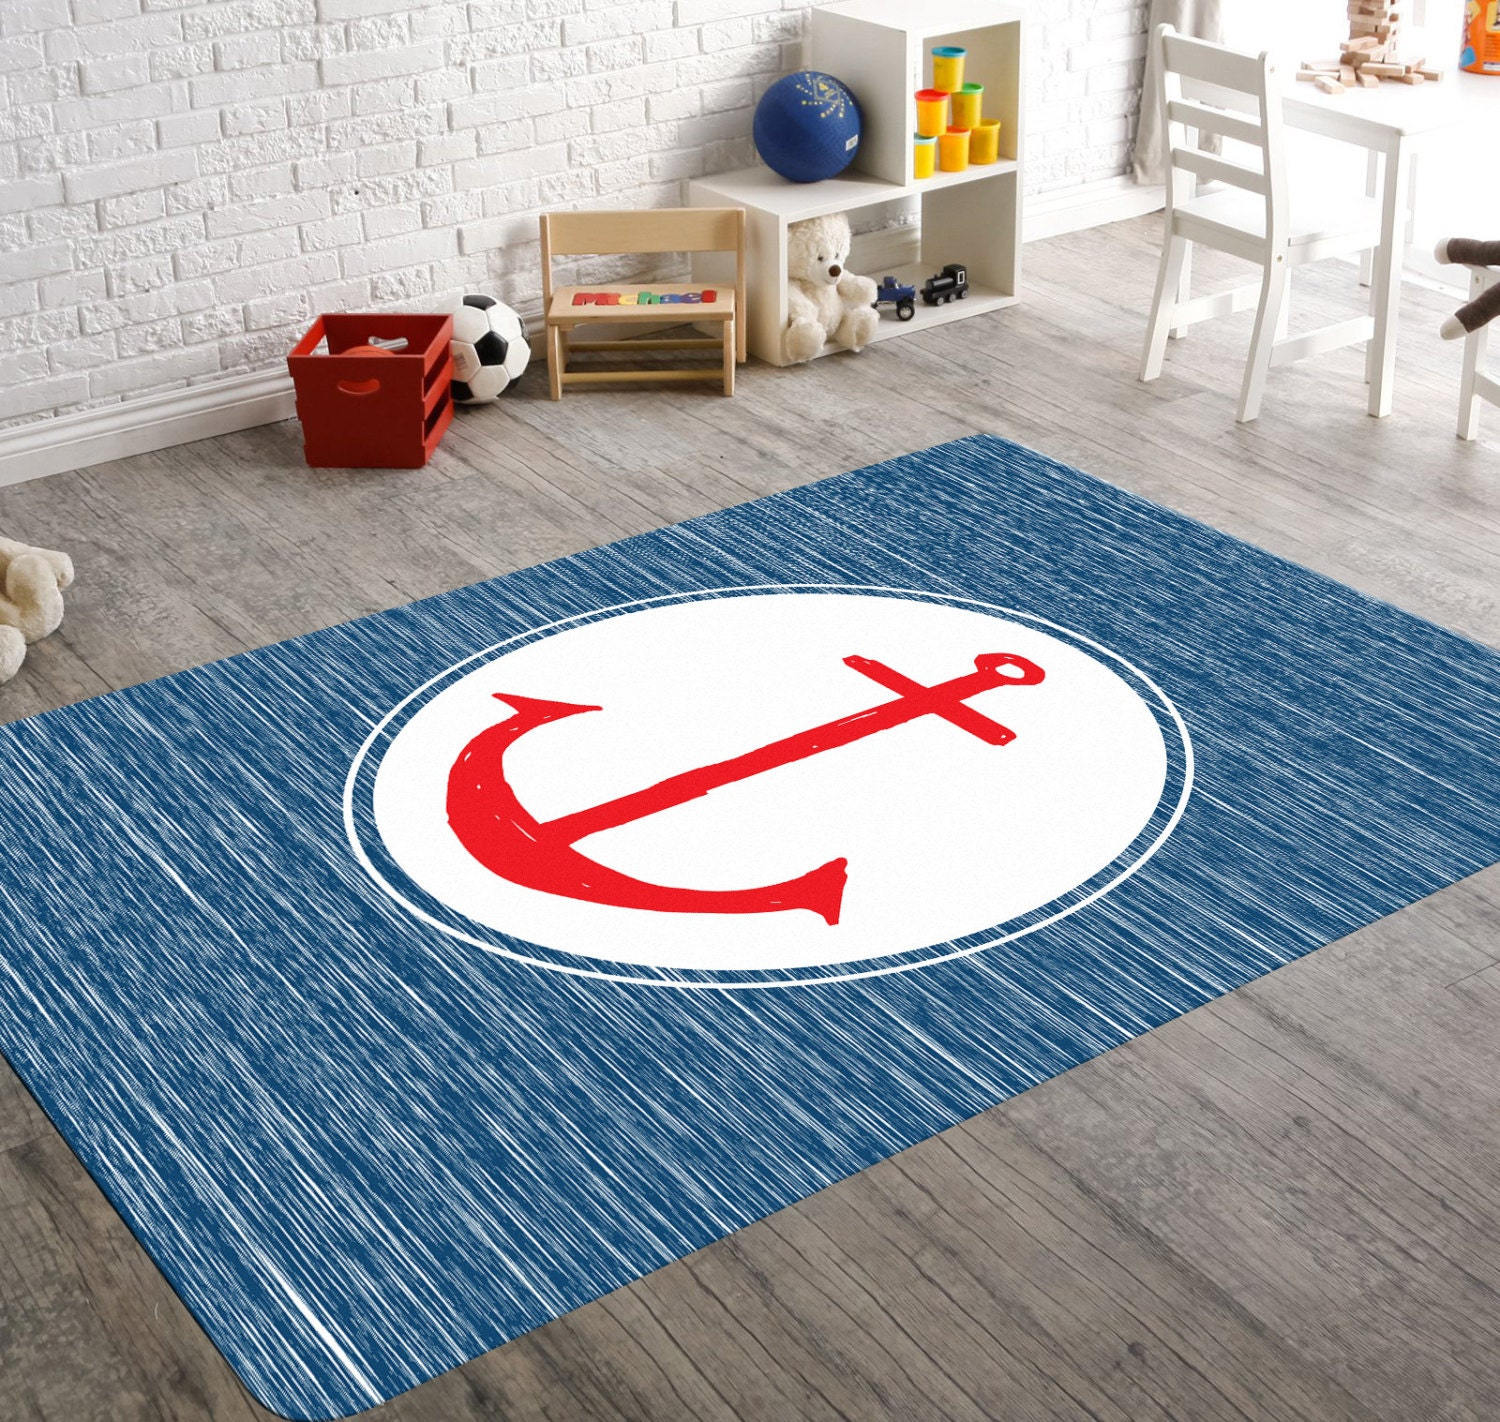 area beach com rug flag round residenciarusc knot rugs nautical